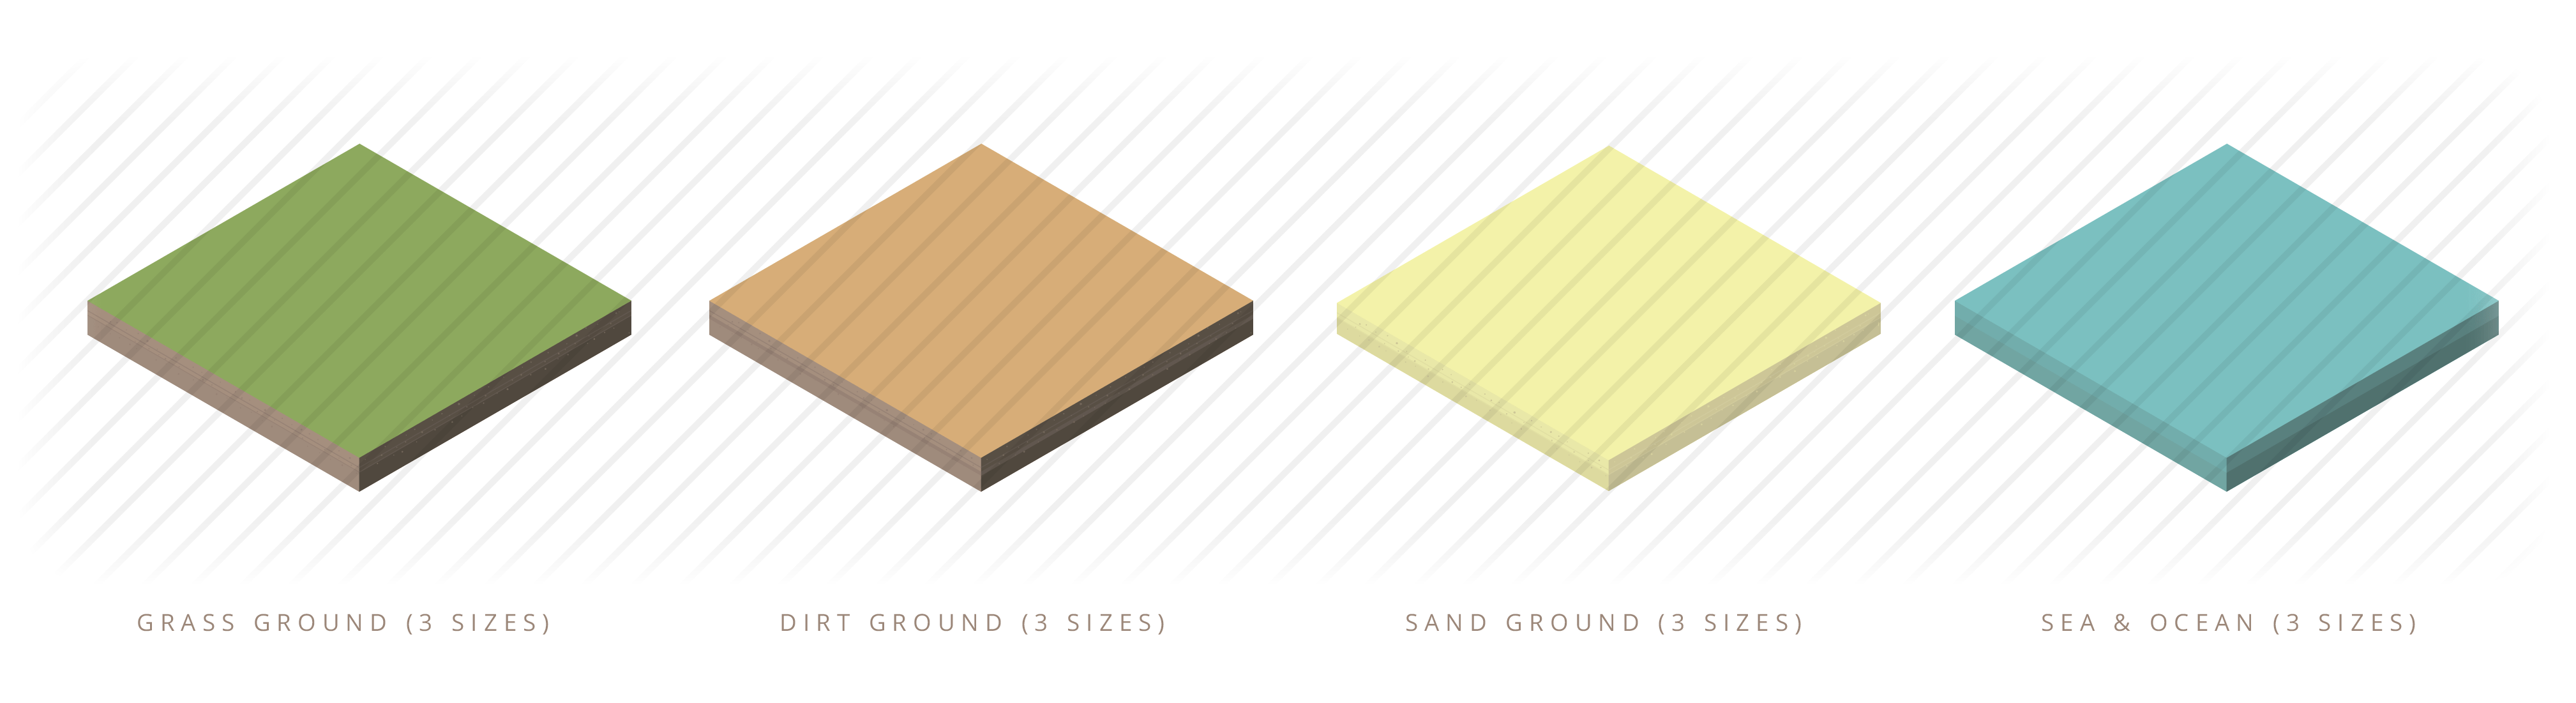 Isometric ground cubes